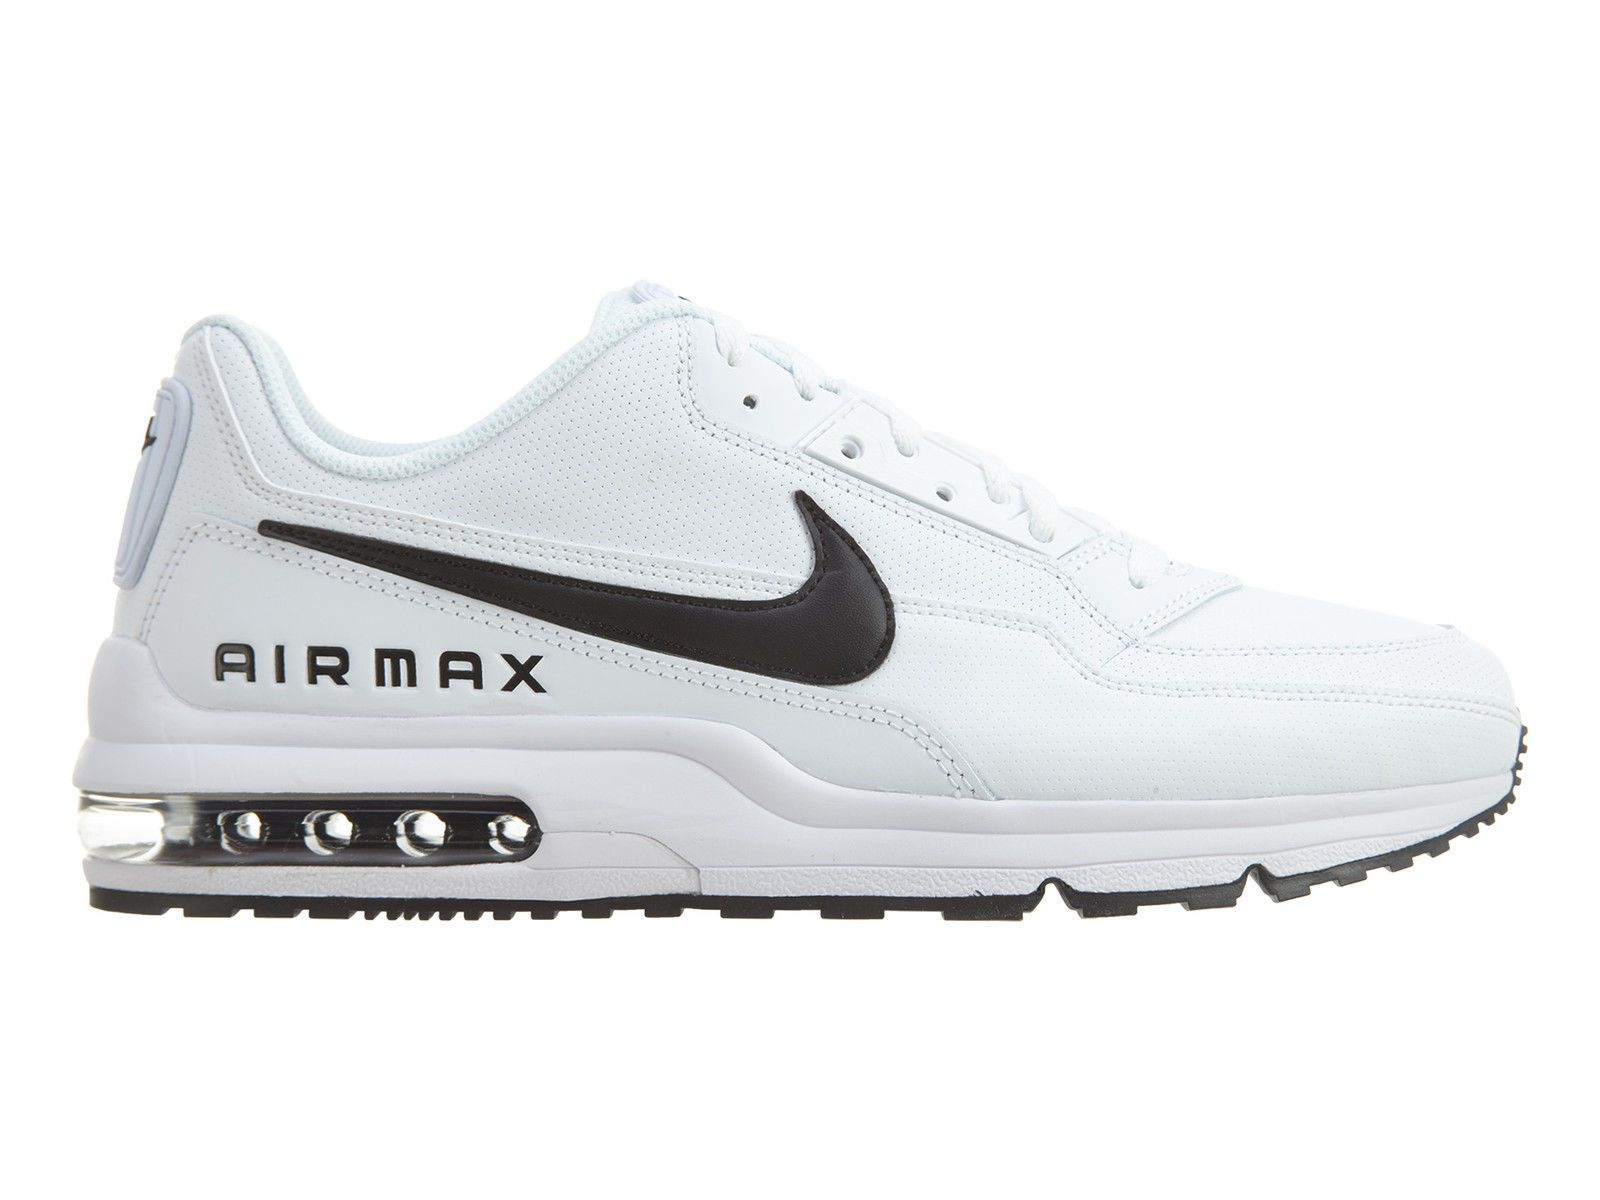 online store 3e3c6 173f6 Nike Air Max LTD 3 Mens 687977-107 White Black Leather Running Shoes Size 10